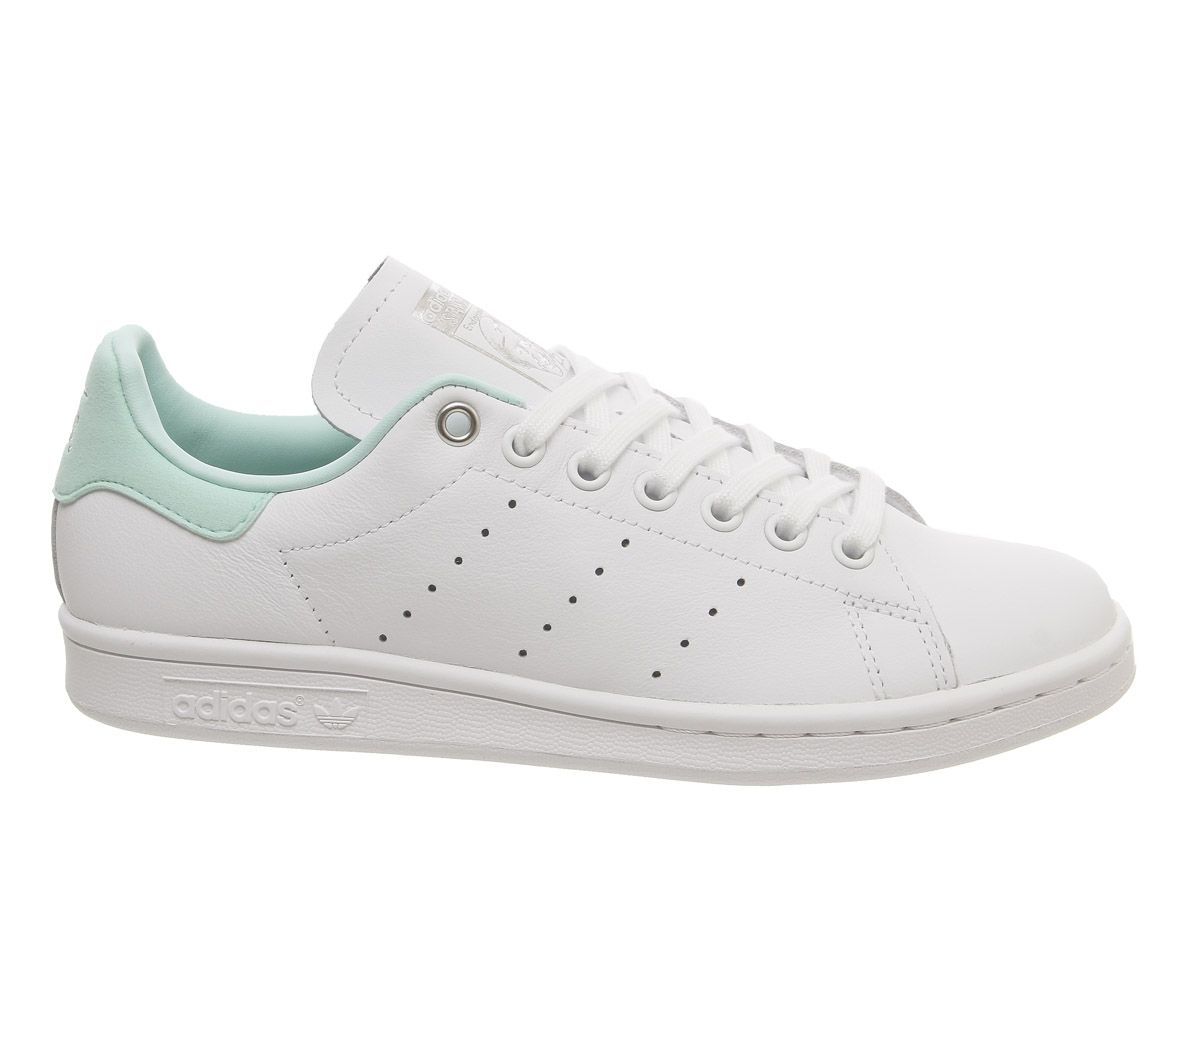 chaussures adidas stan smith pour femme